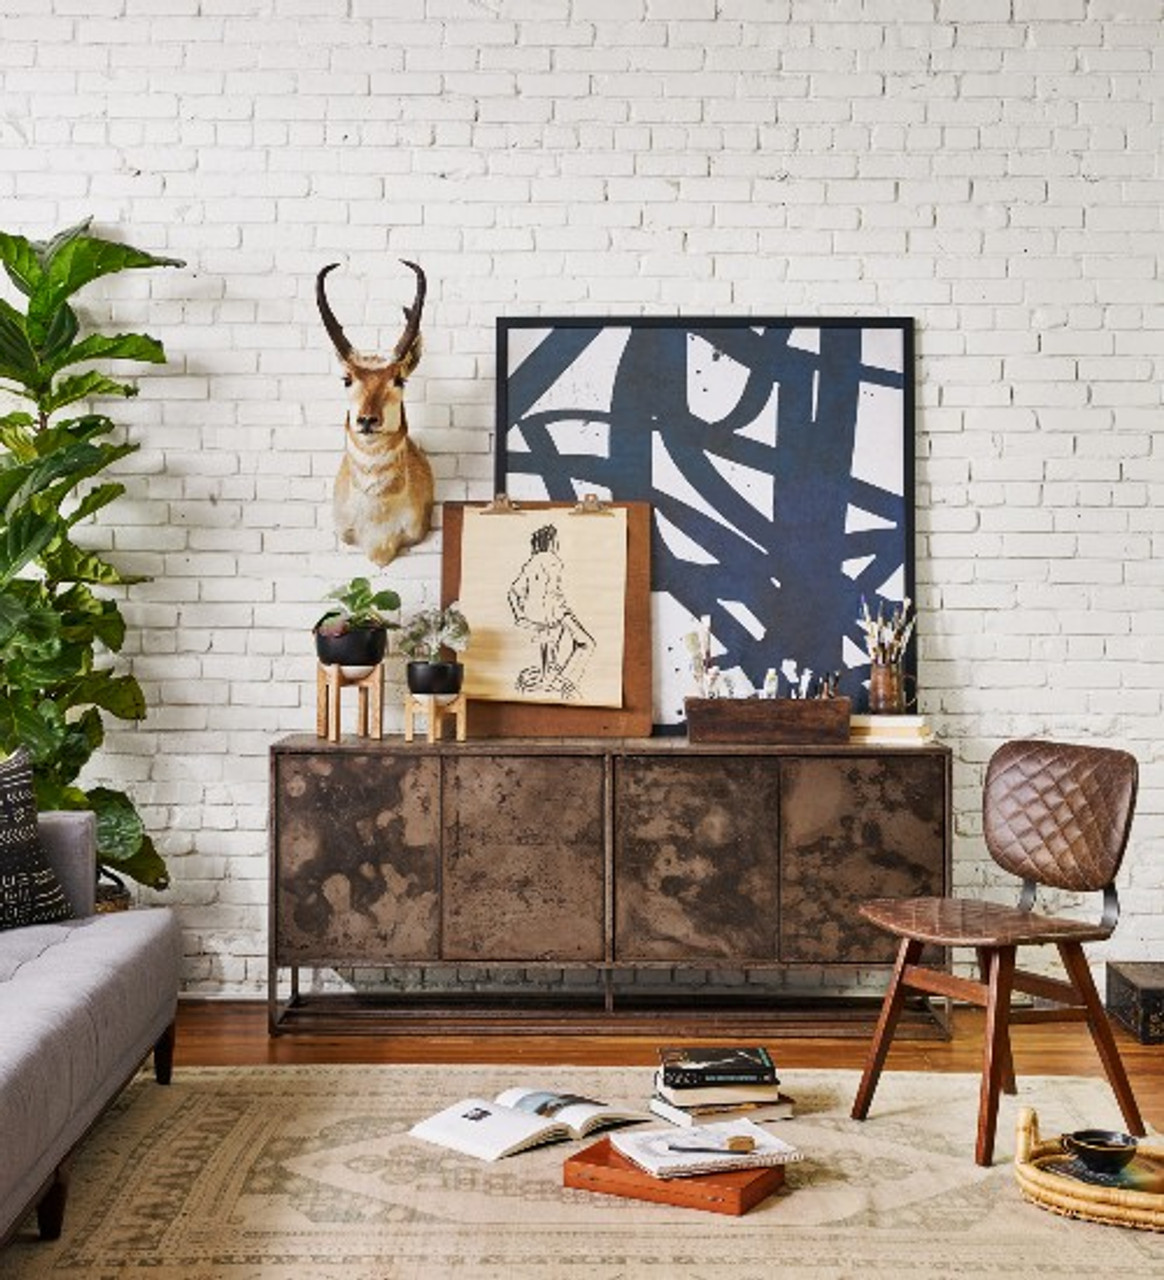 9 Eclectic Home Decor Style Tips - Zin Home